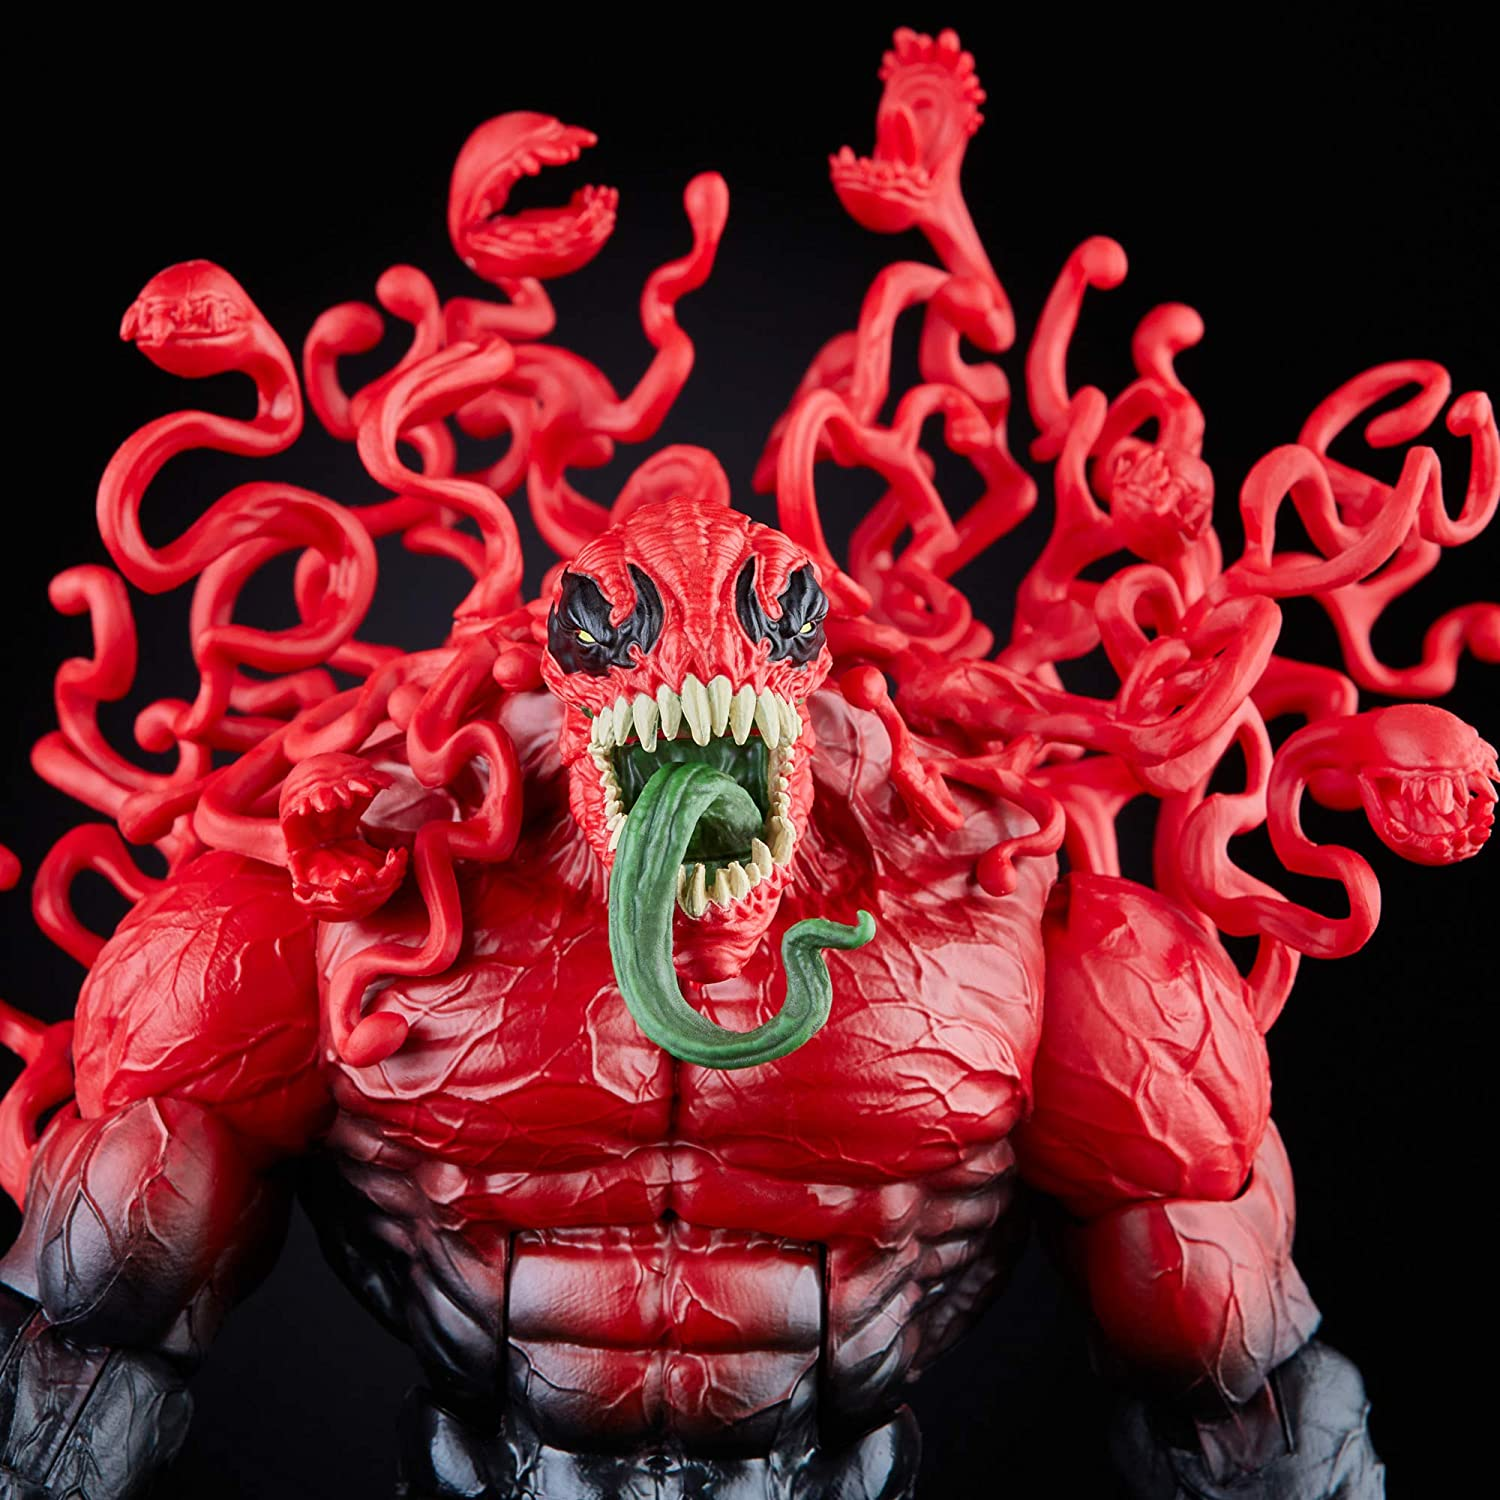 Hasbro Marvel Legends Series 6-inch Collectible Marvel/'s Toxin Action Figure Toy Ages 4 and Up